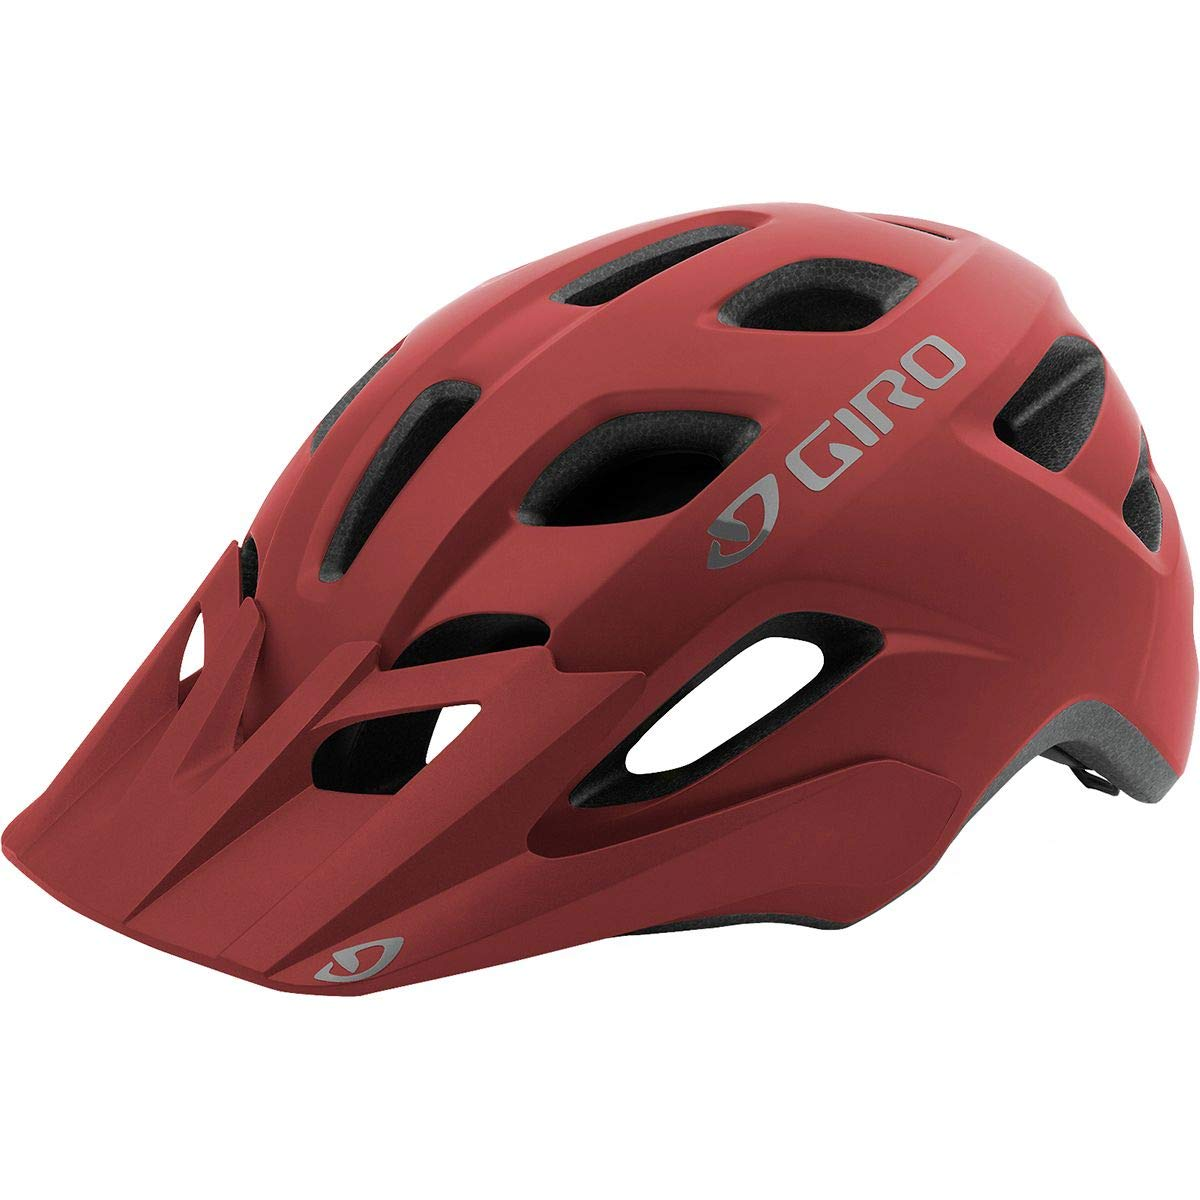 Giro Fixture MIPS Bike Helmet,Matte Dark Red,One Size by Giro